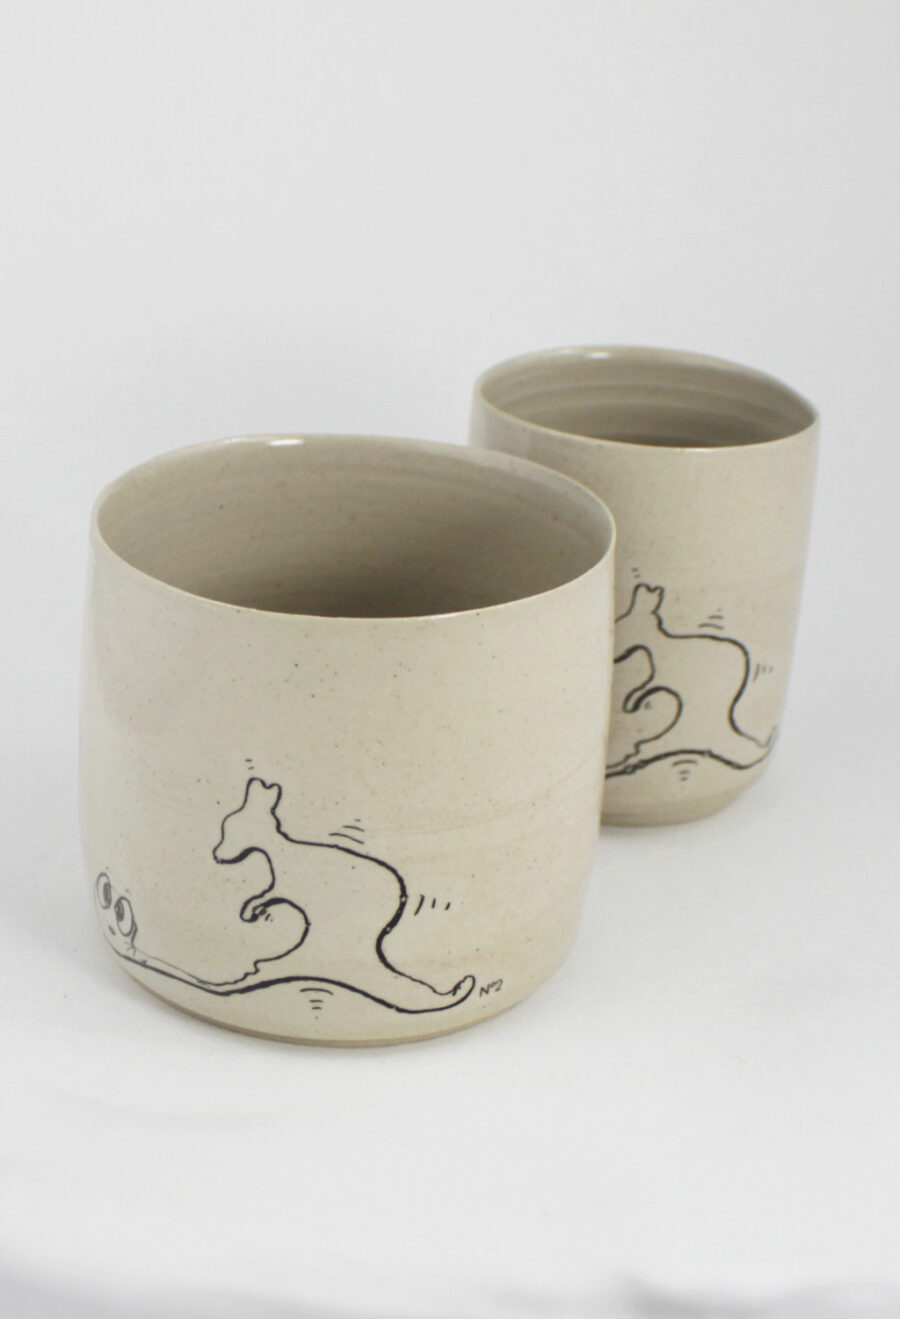 kaffeebecher set the-worm-ate-nummer-2-känguru-my deer illustrated ceramics